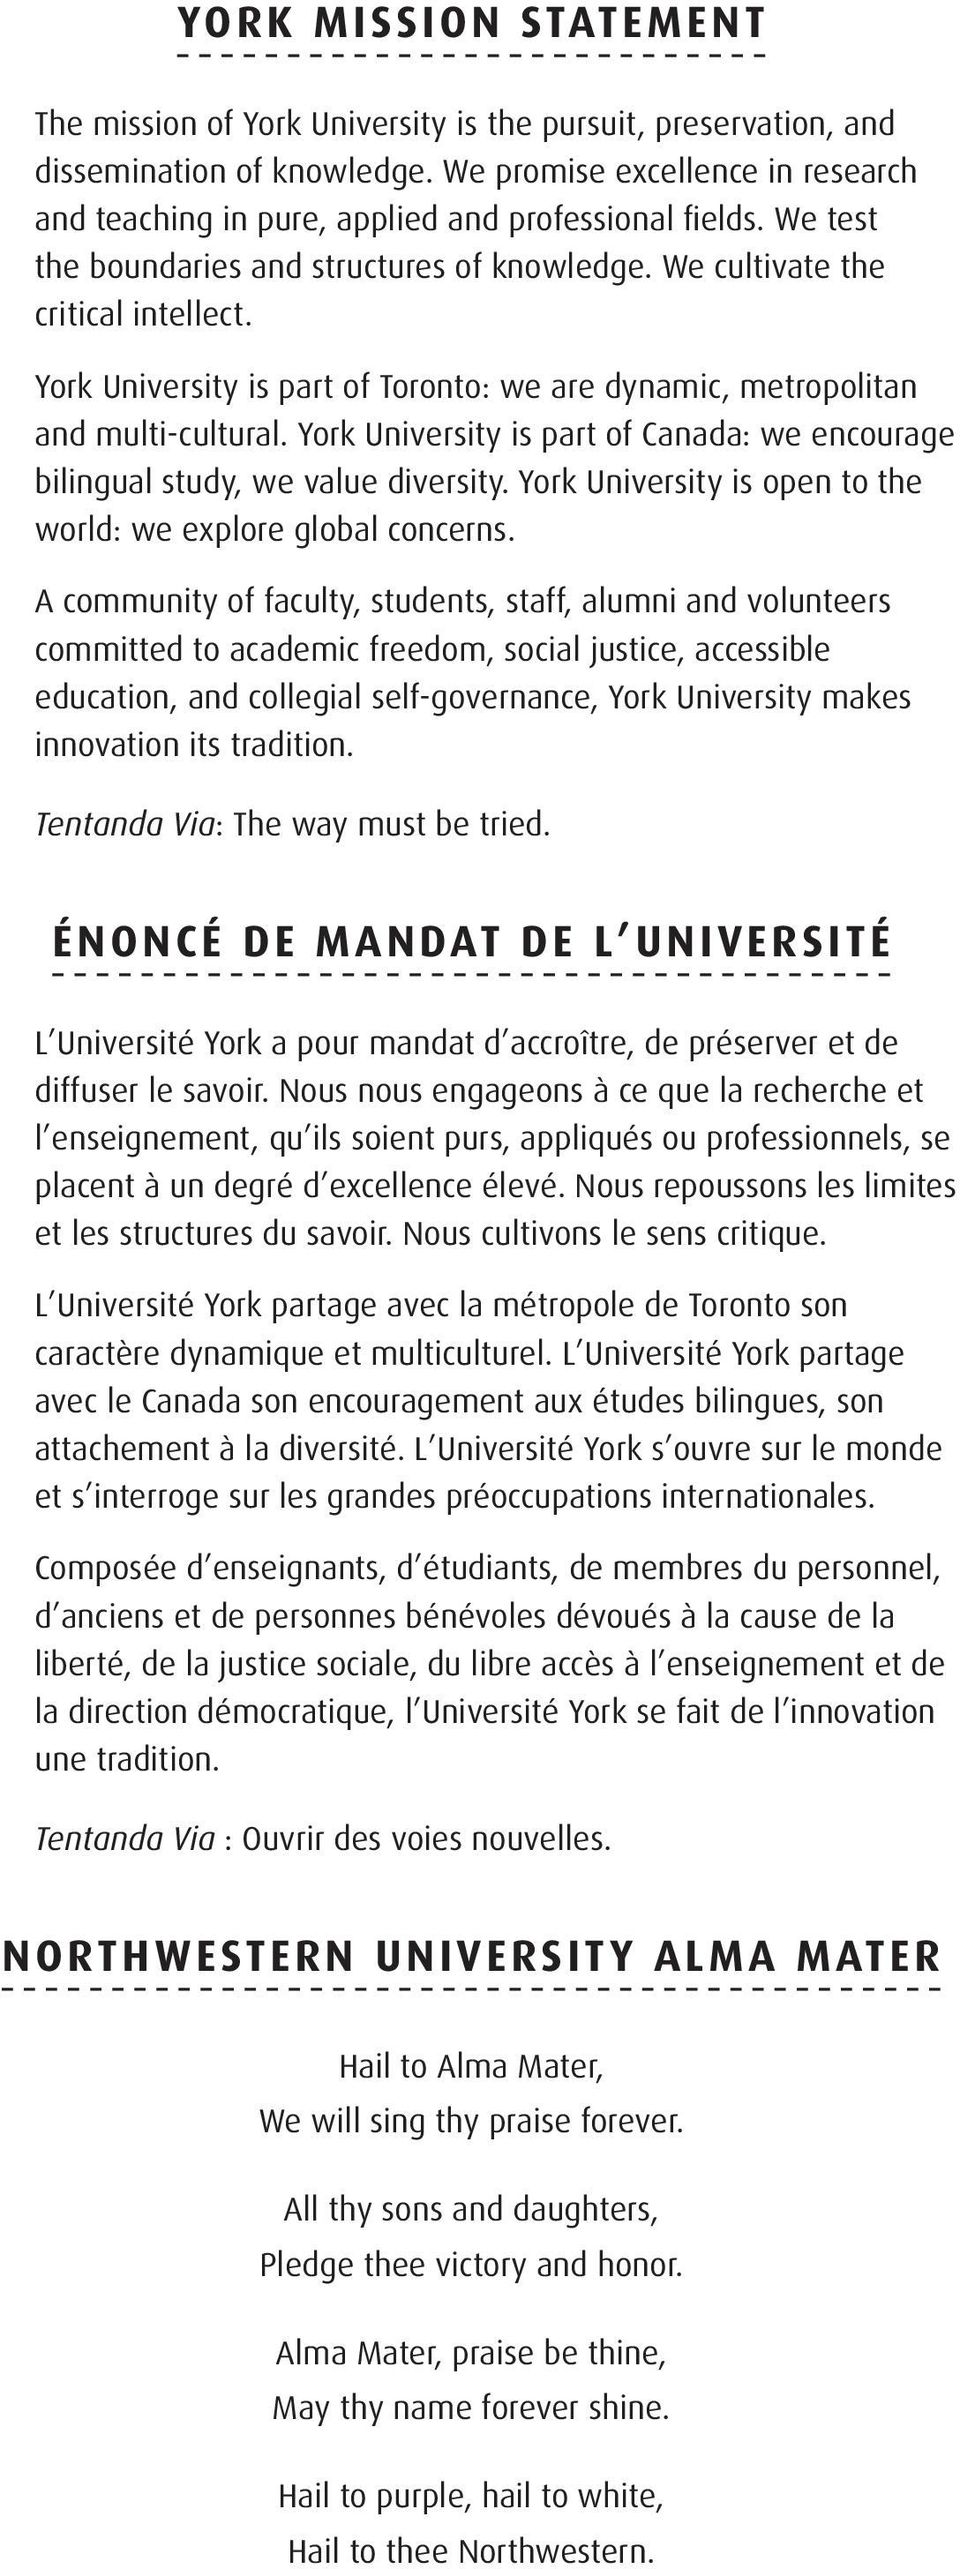 York University is part of Toronto: we are dynamic, metropolitan and multi-cultural. York University is part of Canada: we encourage bilingual study, we value diversity.